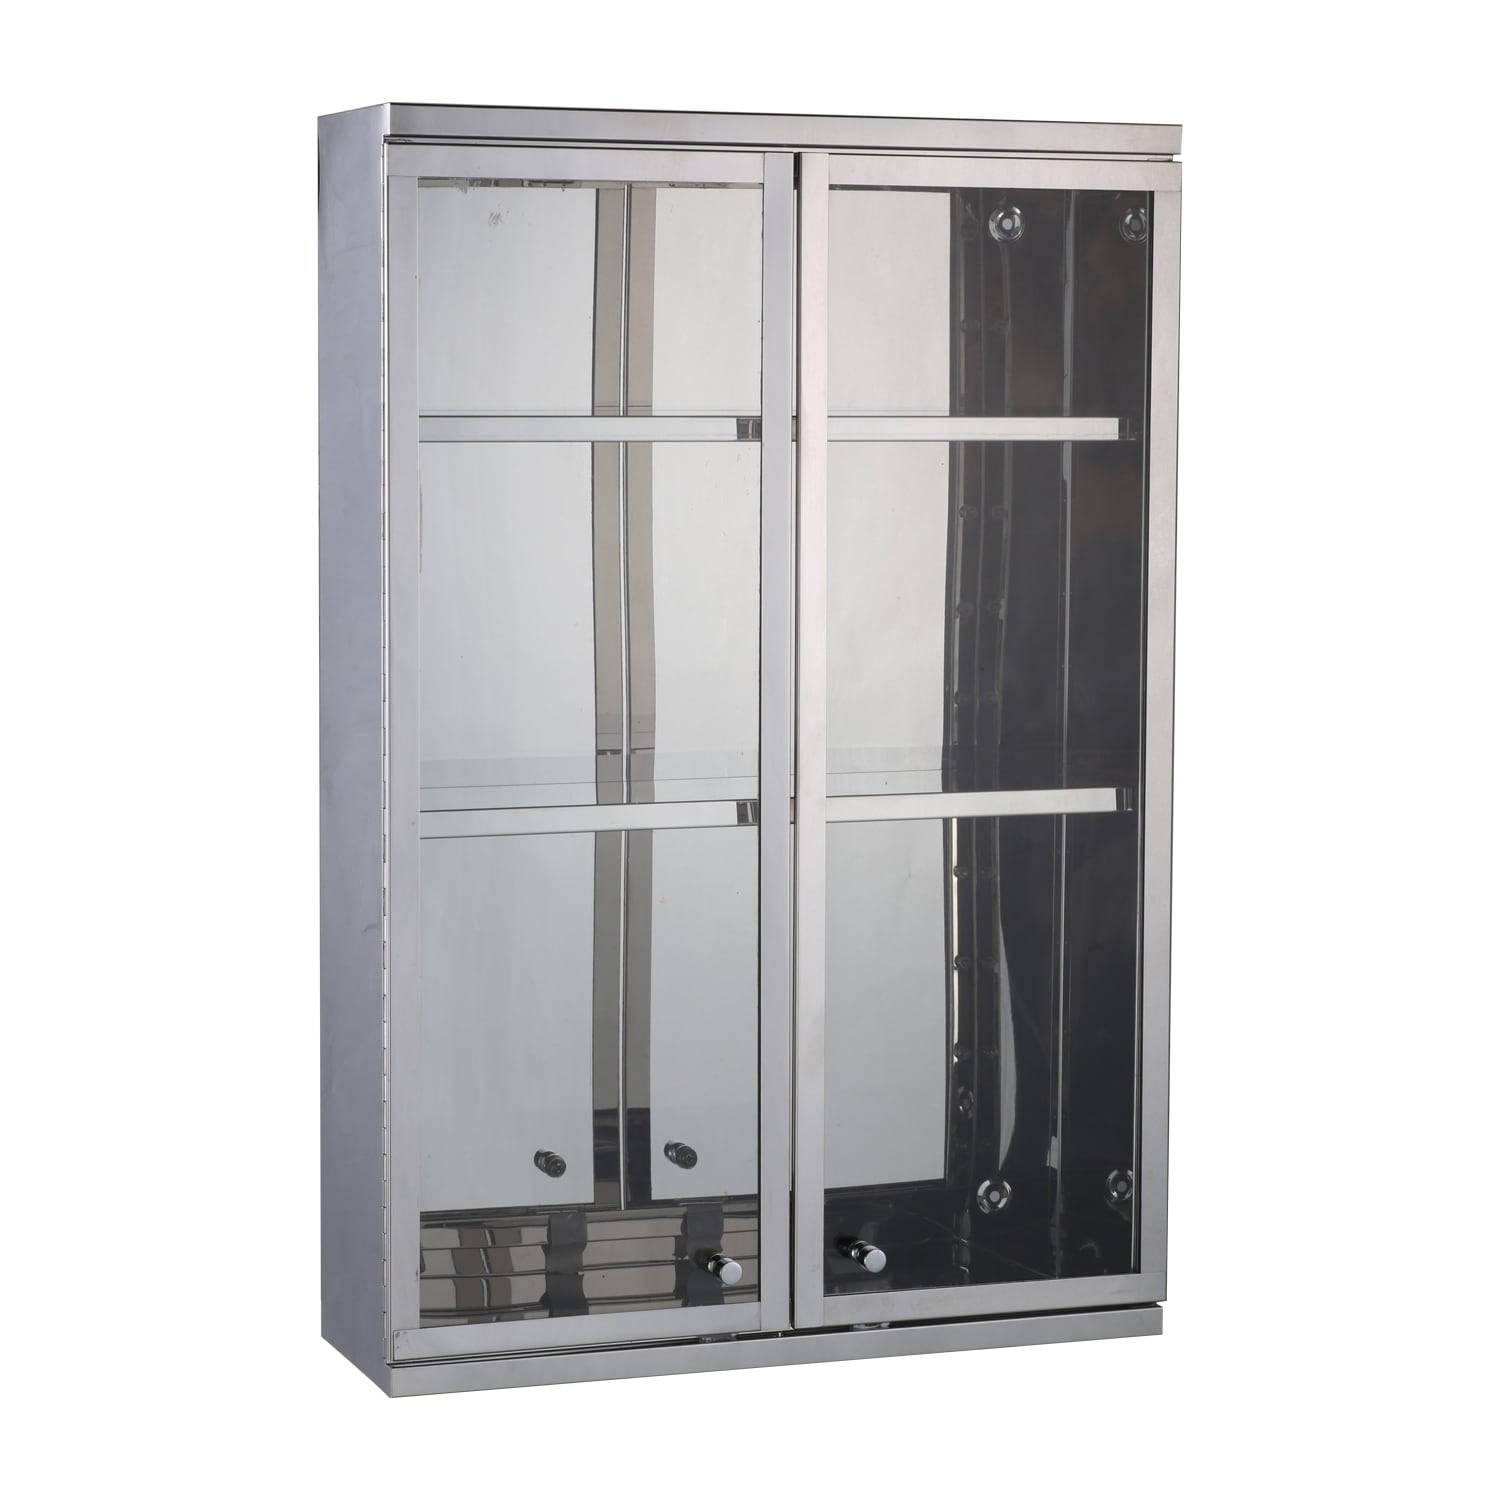 Homcom 24 X 16 Stainless Steel Double Door Display Wall Cabinet Free Shipping Today 18076216